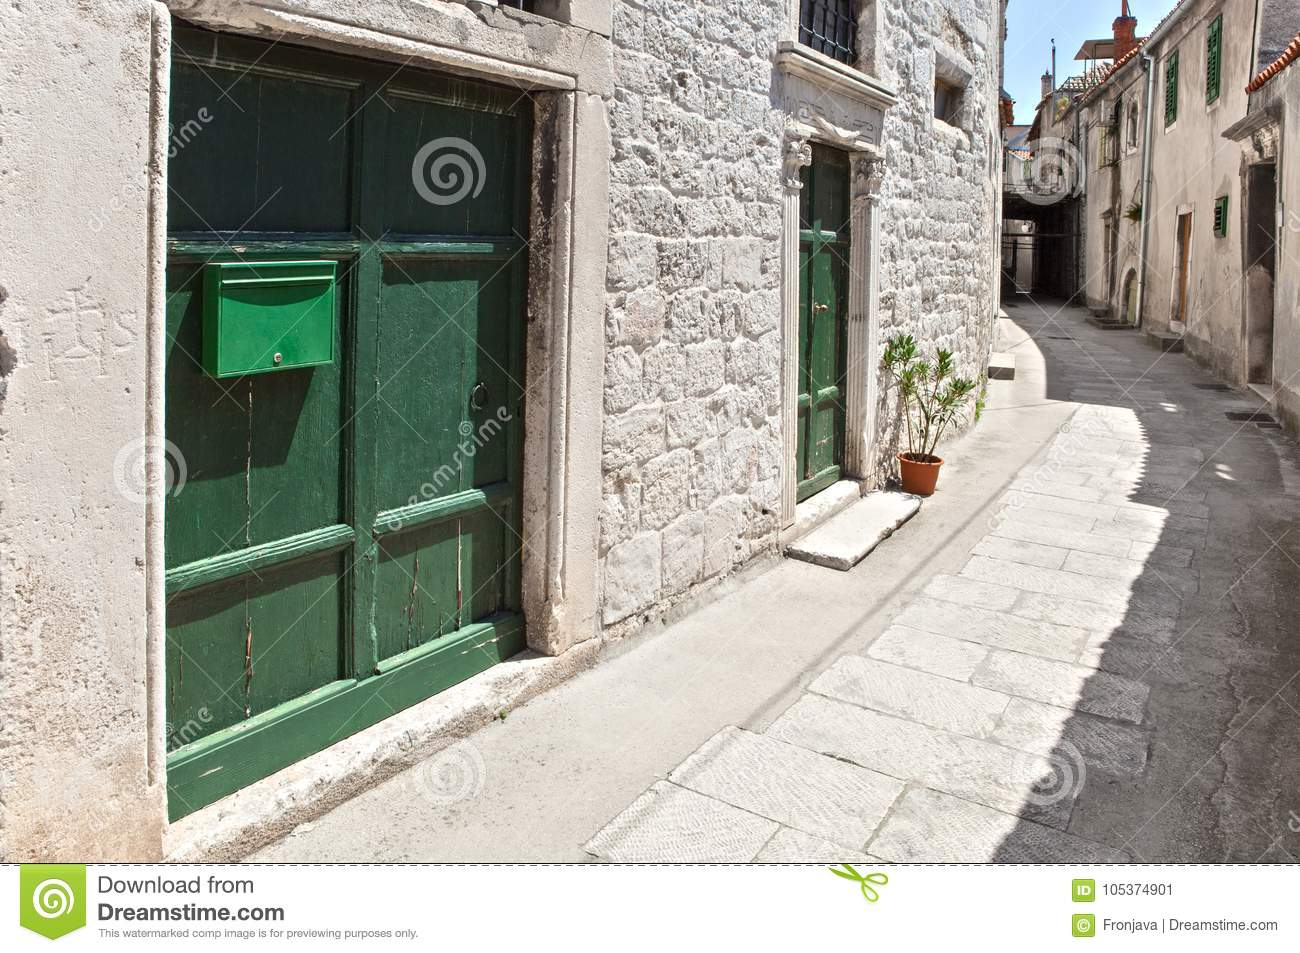 Narrow street in old mediterranean town with green doors on white, stone built facade